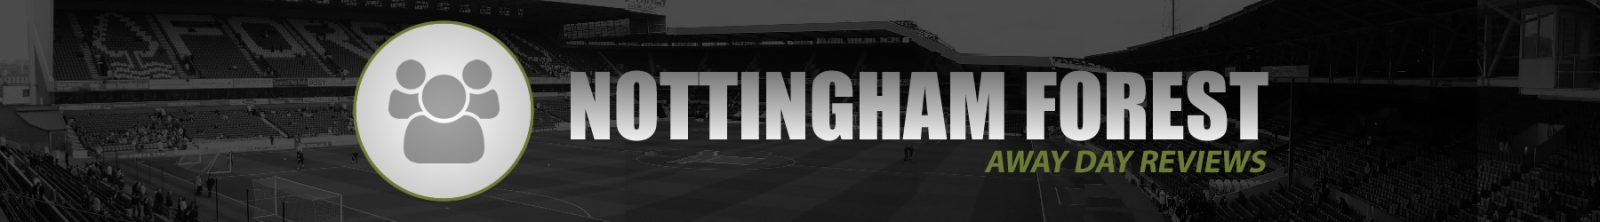 Review Nottingham Forest